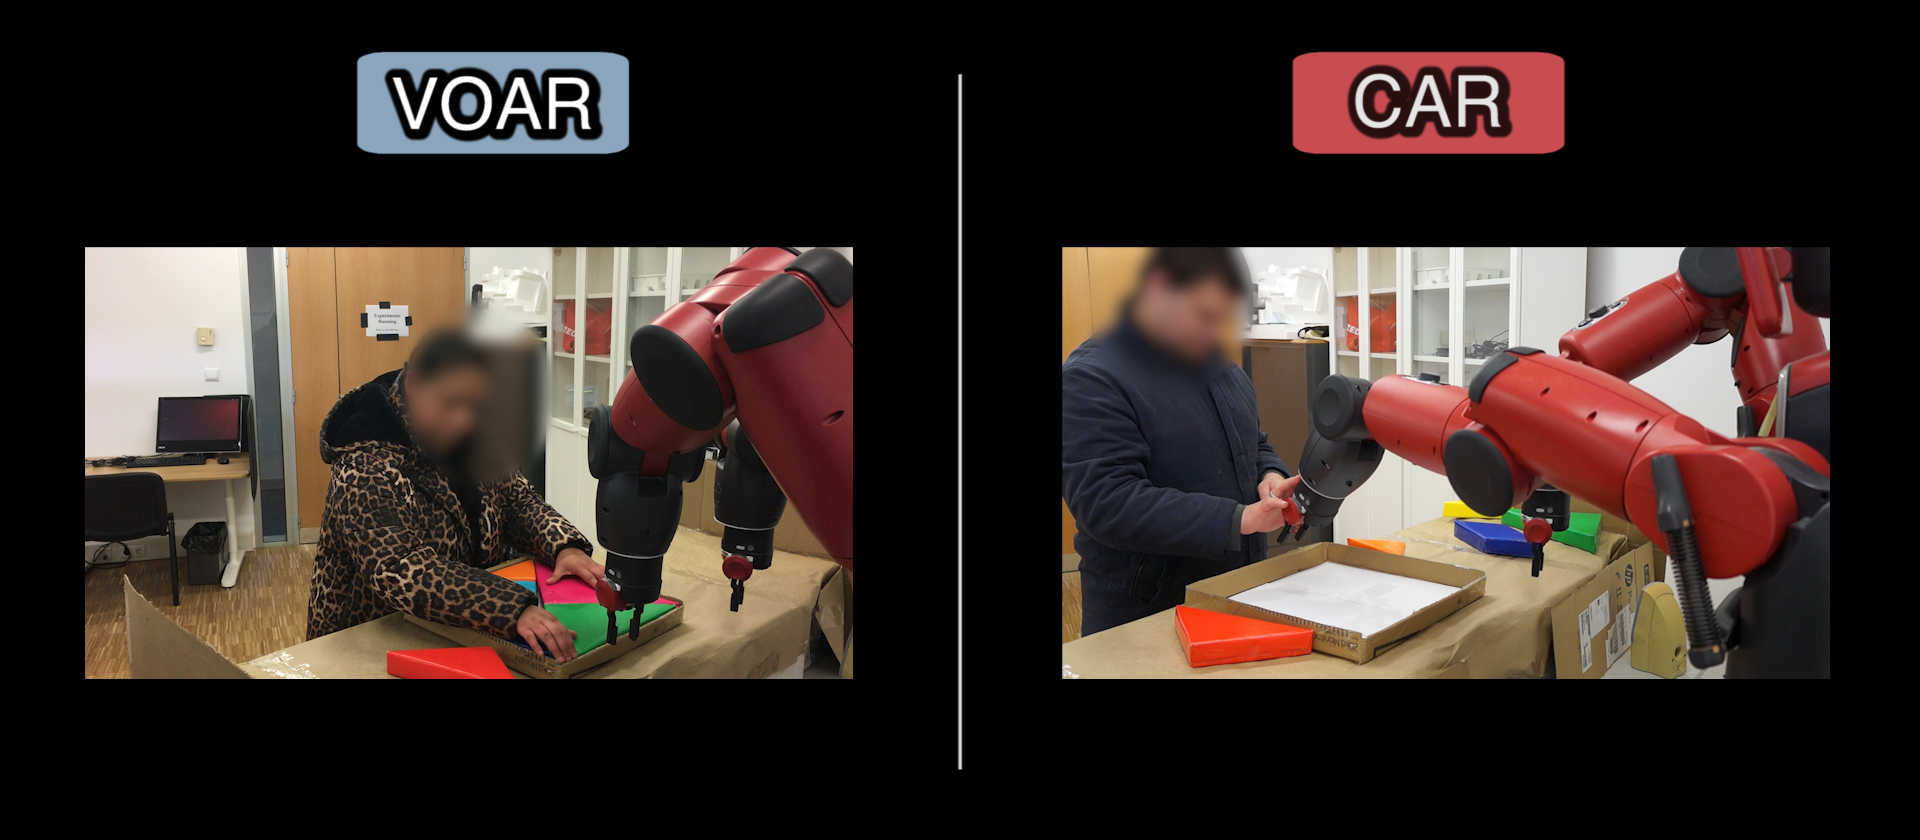 Two blind people doing a tagram puzzle with the help of a robot. One the robot is helping the user with its arms (Condition CAR); in the other the robot is still just providing audio instructions (Condition VOAR).